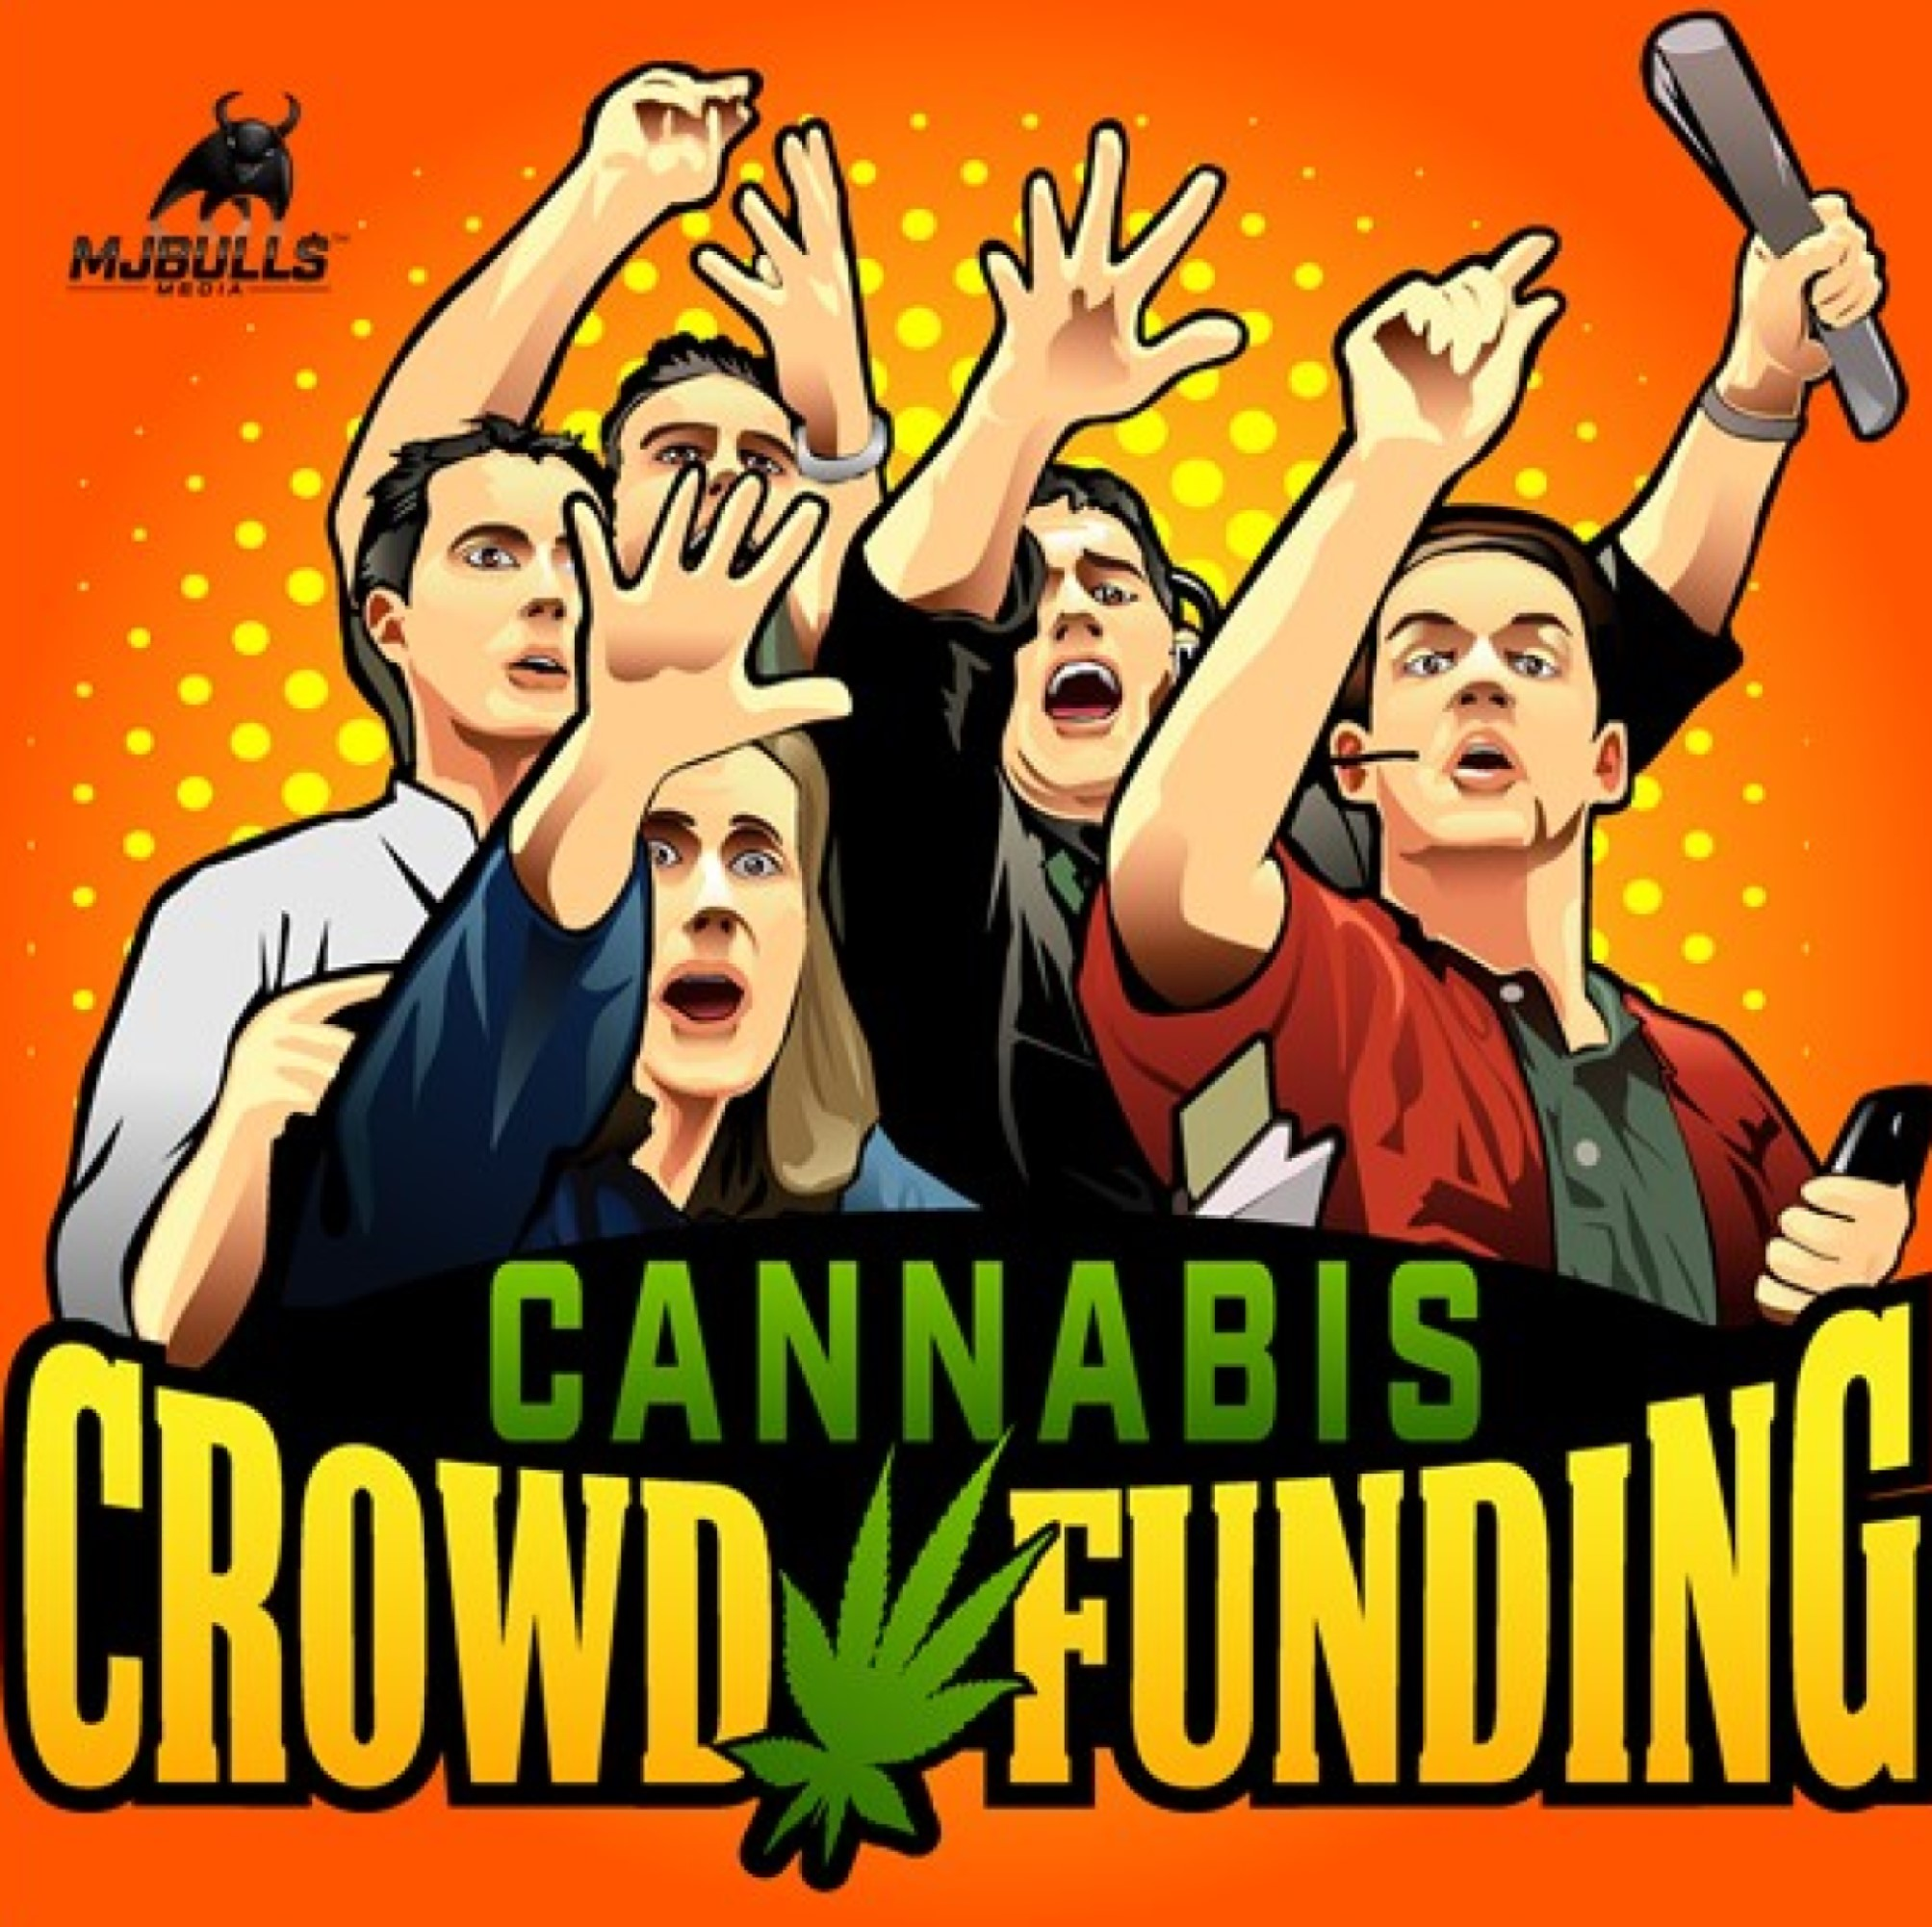 cannabis crowdfunding artwork with black bull square.jpg